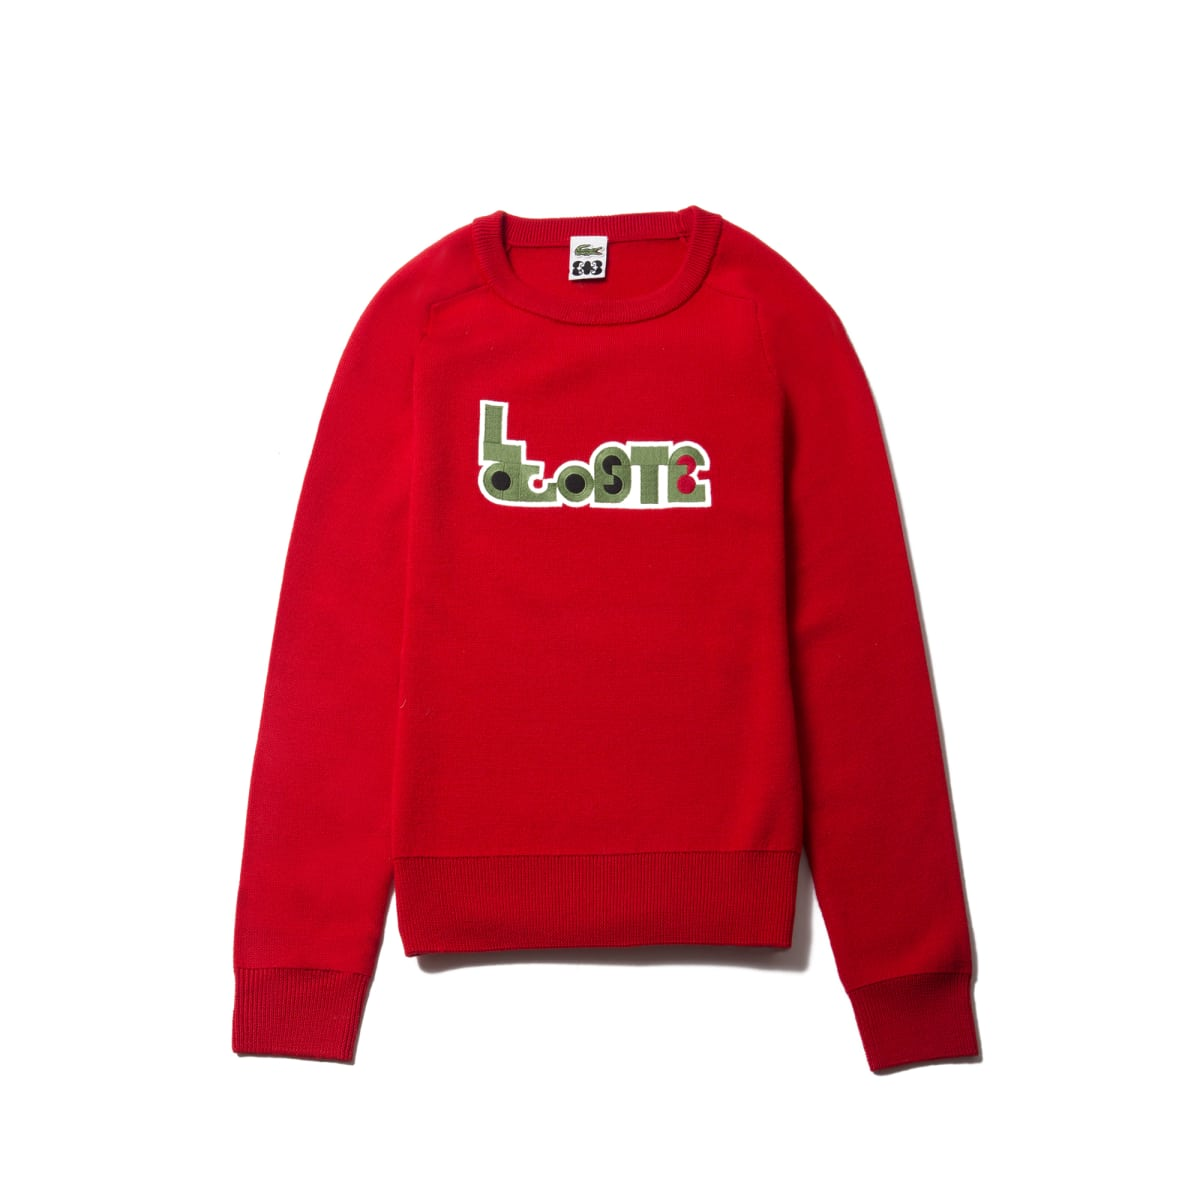 Lacoste M/M Paris holiday collection